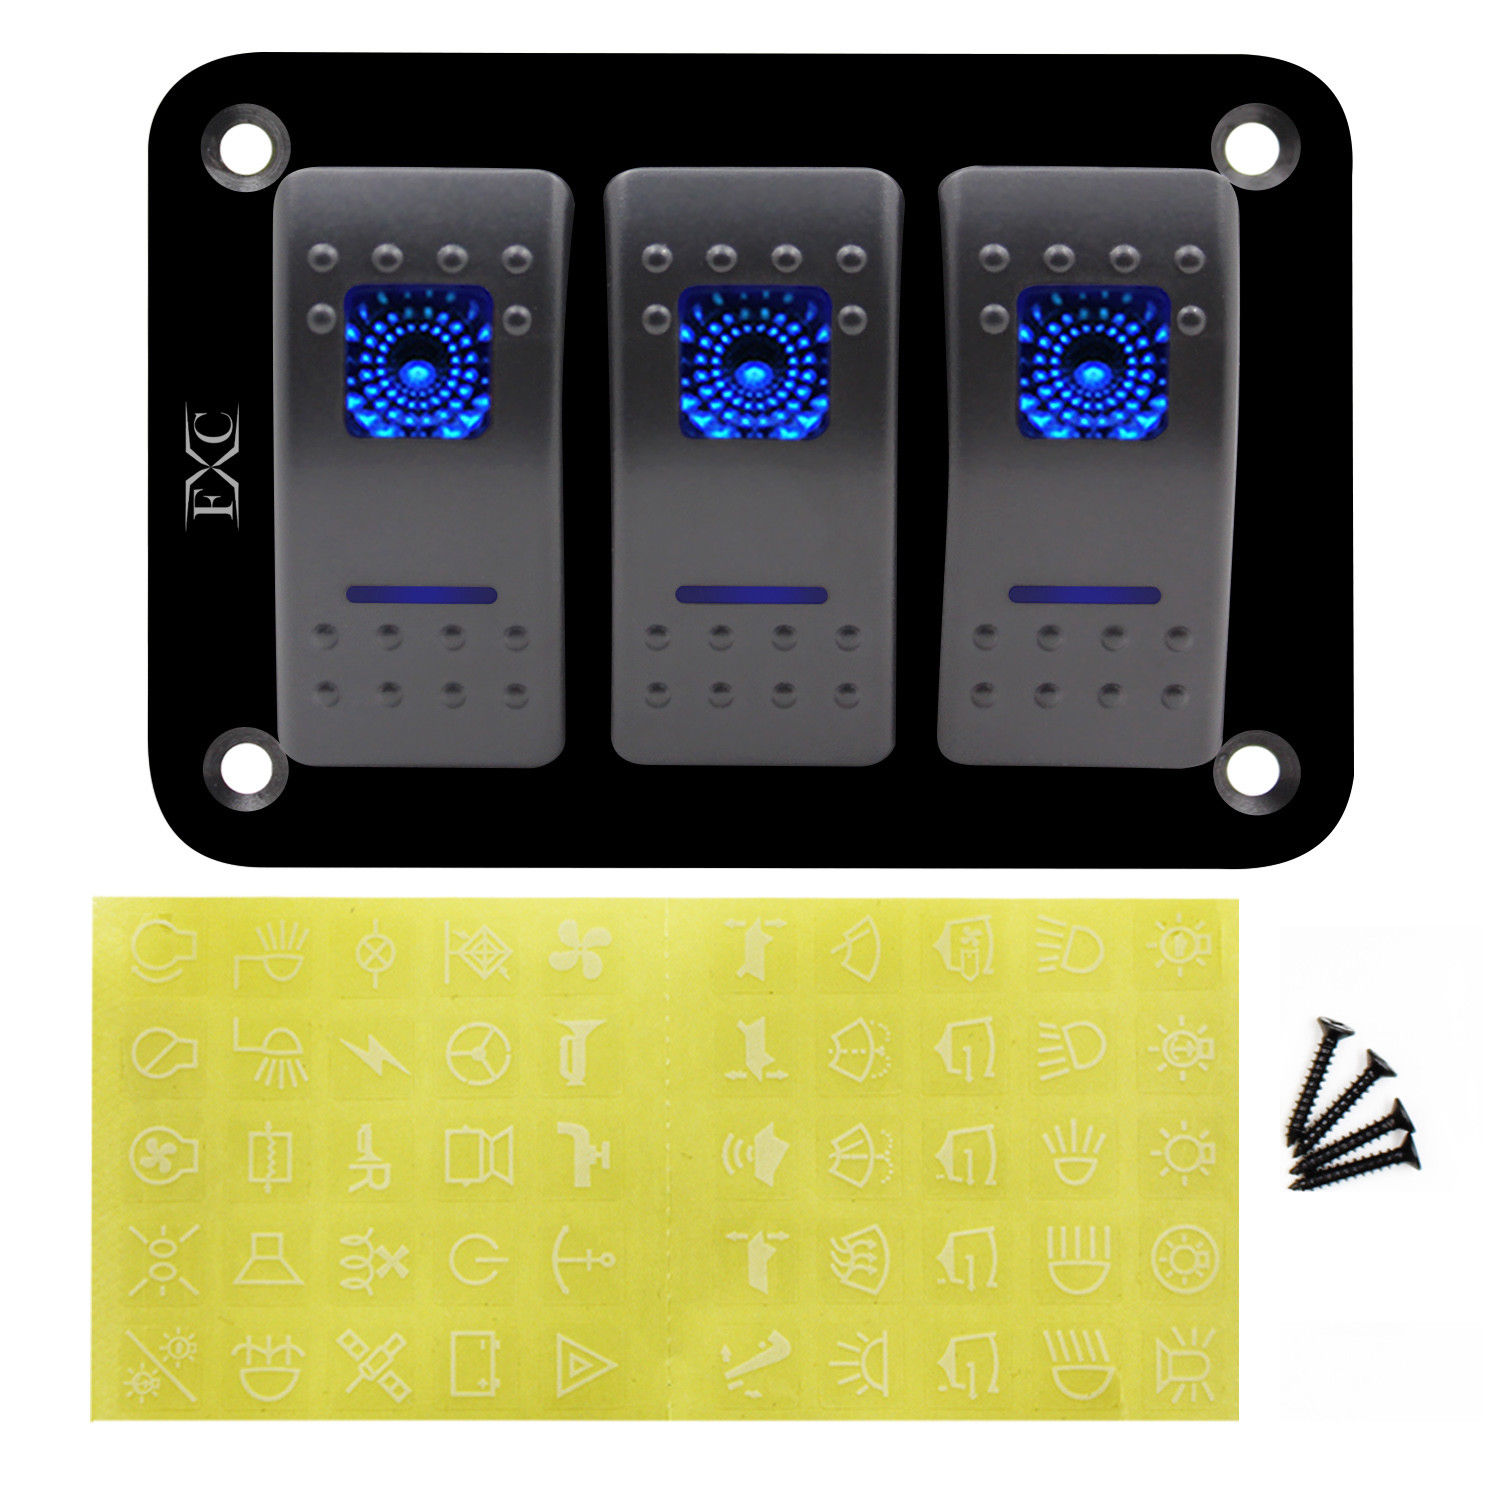 3 Gang Dual Led Light Rocker Switch Panel 12v And 24v Circuit With Switches In Parallel A Lamp Cell The Breakers Pre Wired Bar Car Caravan Boat Blue Ce Certification From